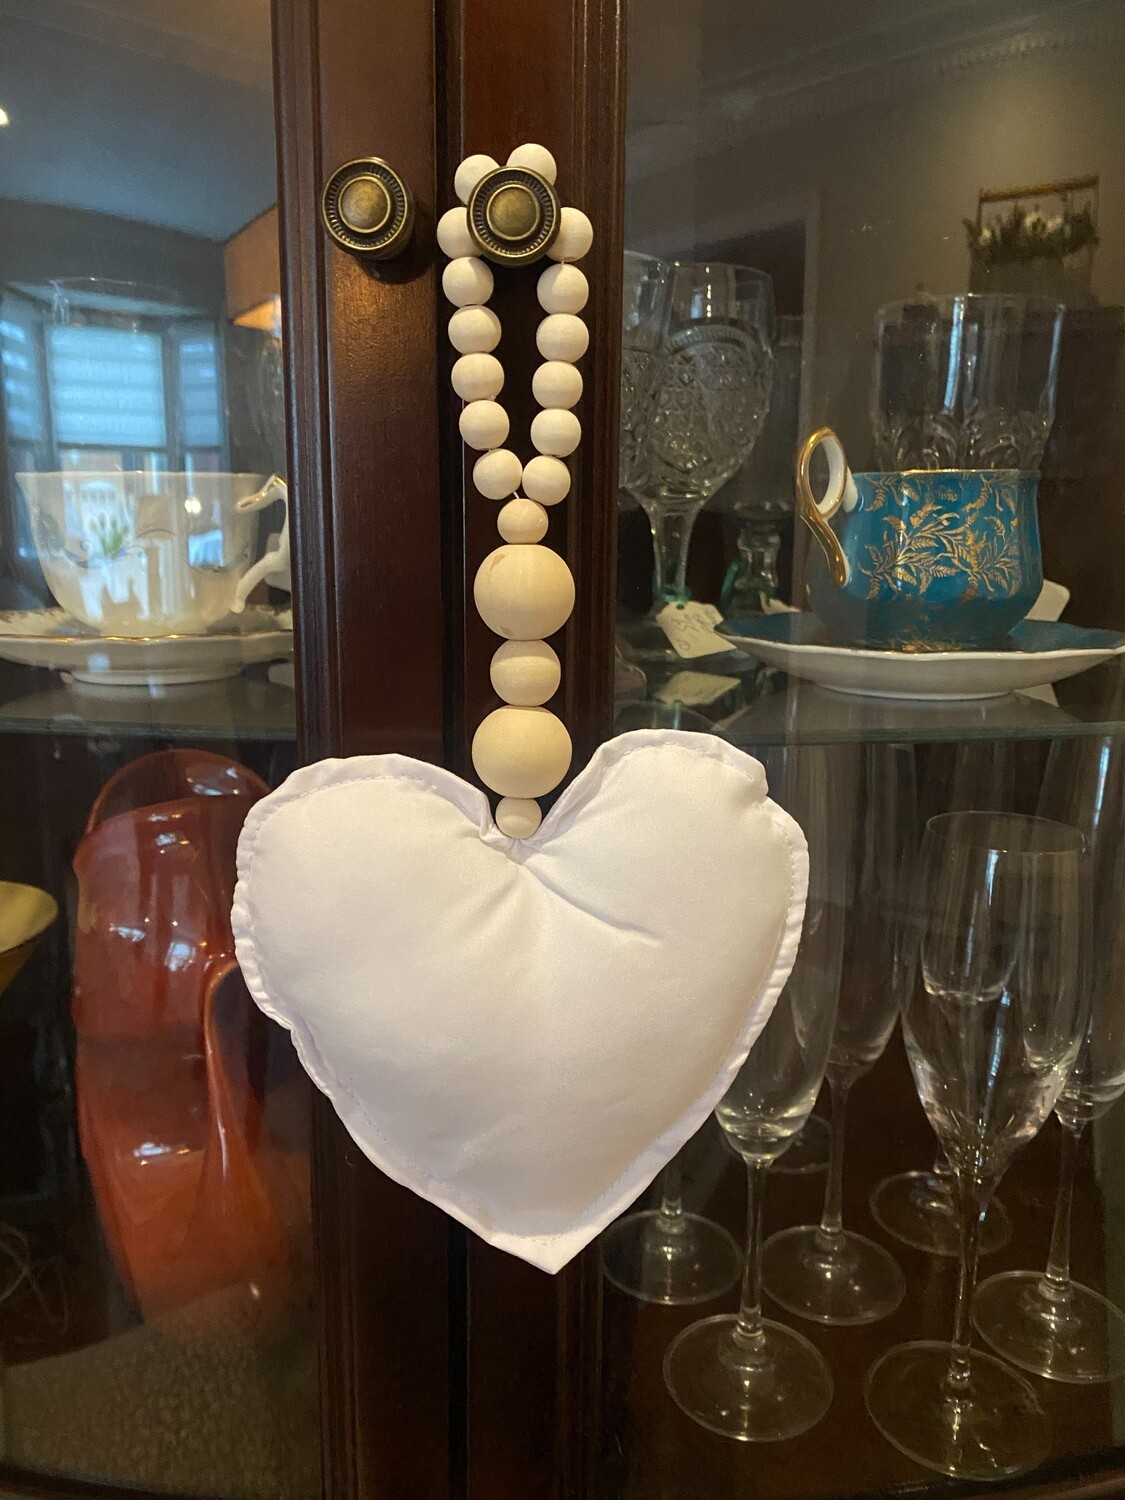 The Scented Market Decor Beads-Heart